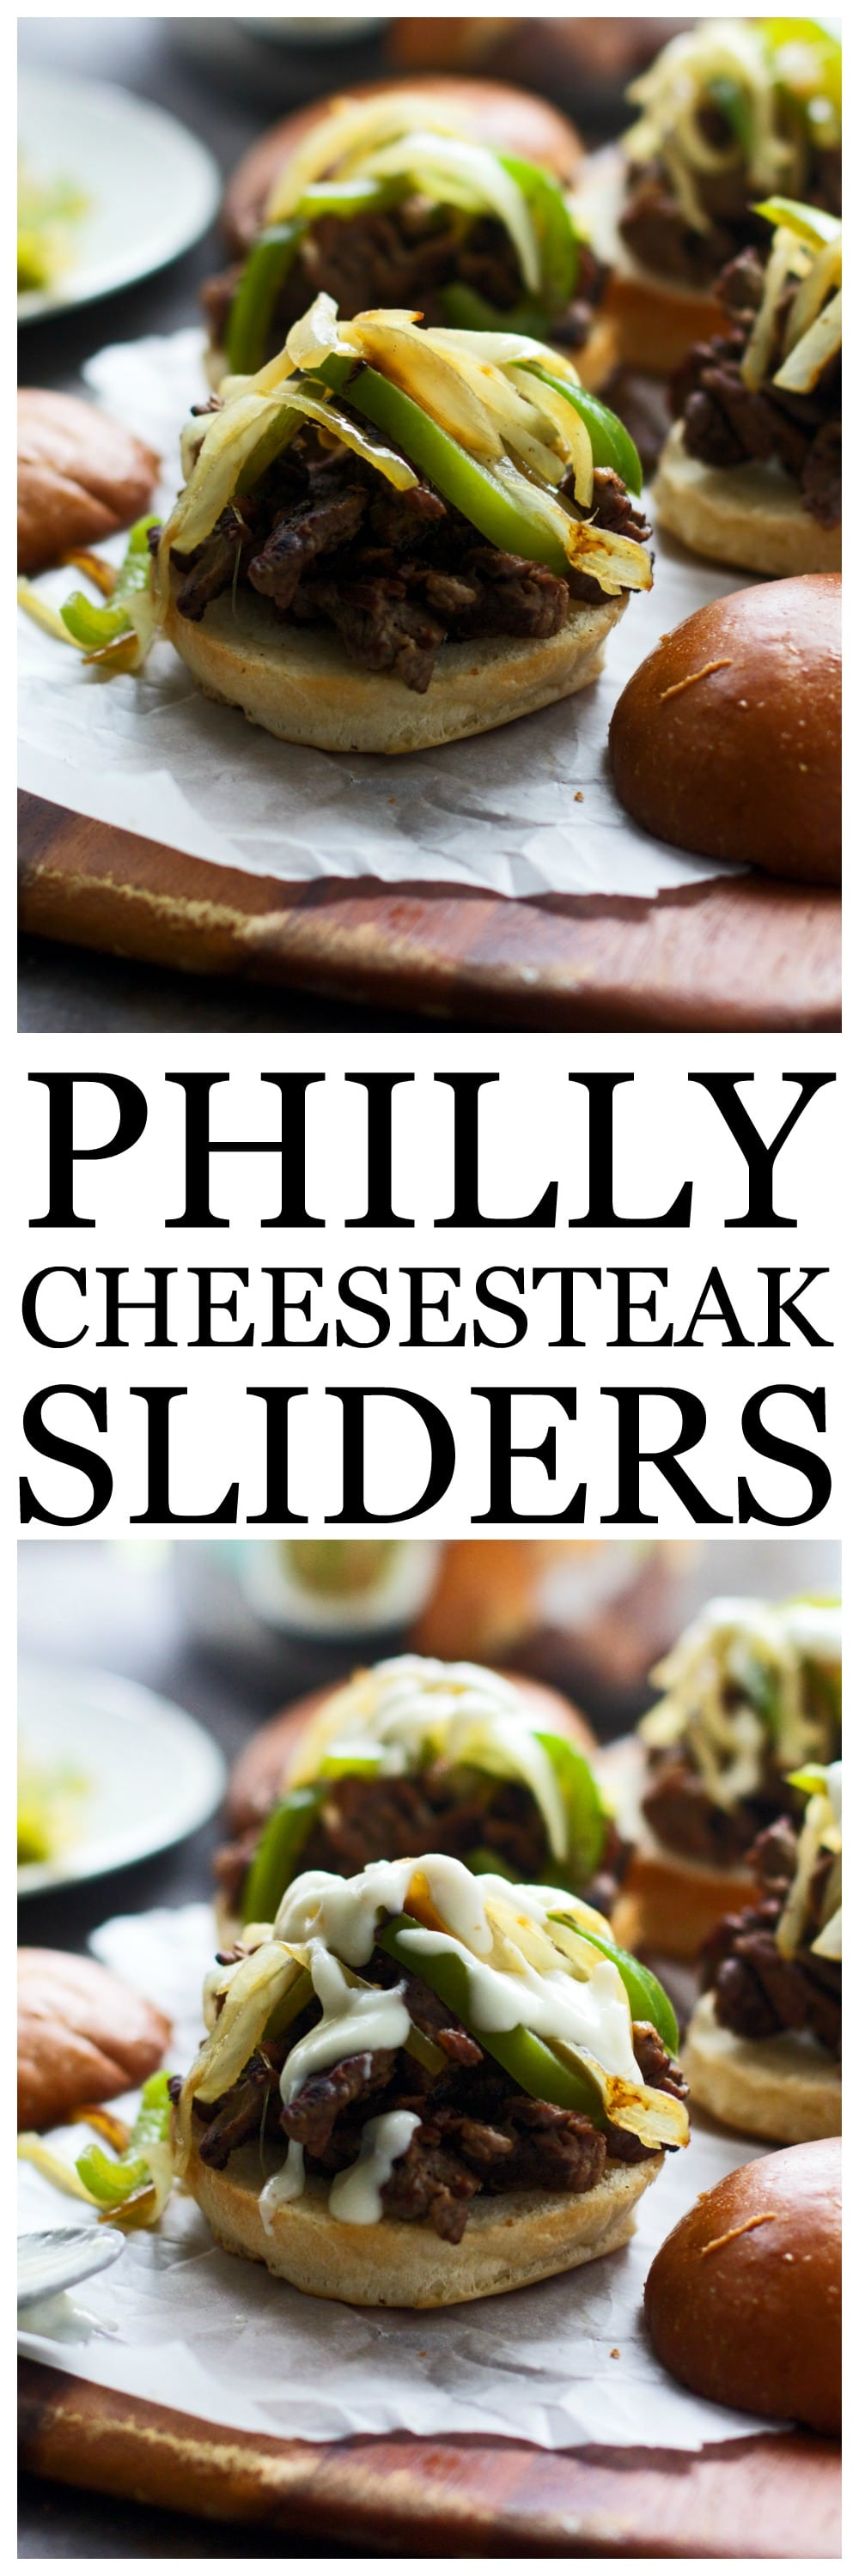 THESE PHILLY CHEESESTEAK SLIDERS ARE PERFECT FOR GAME DAY ENTERTAINING!